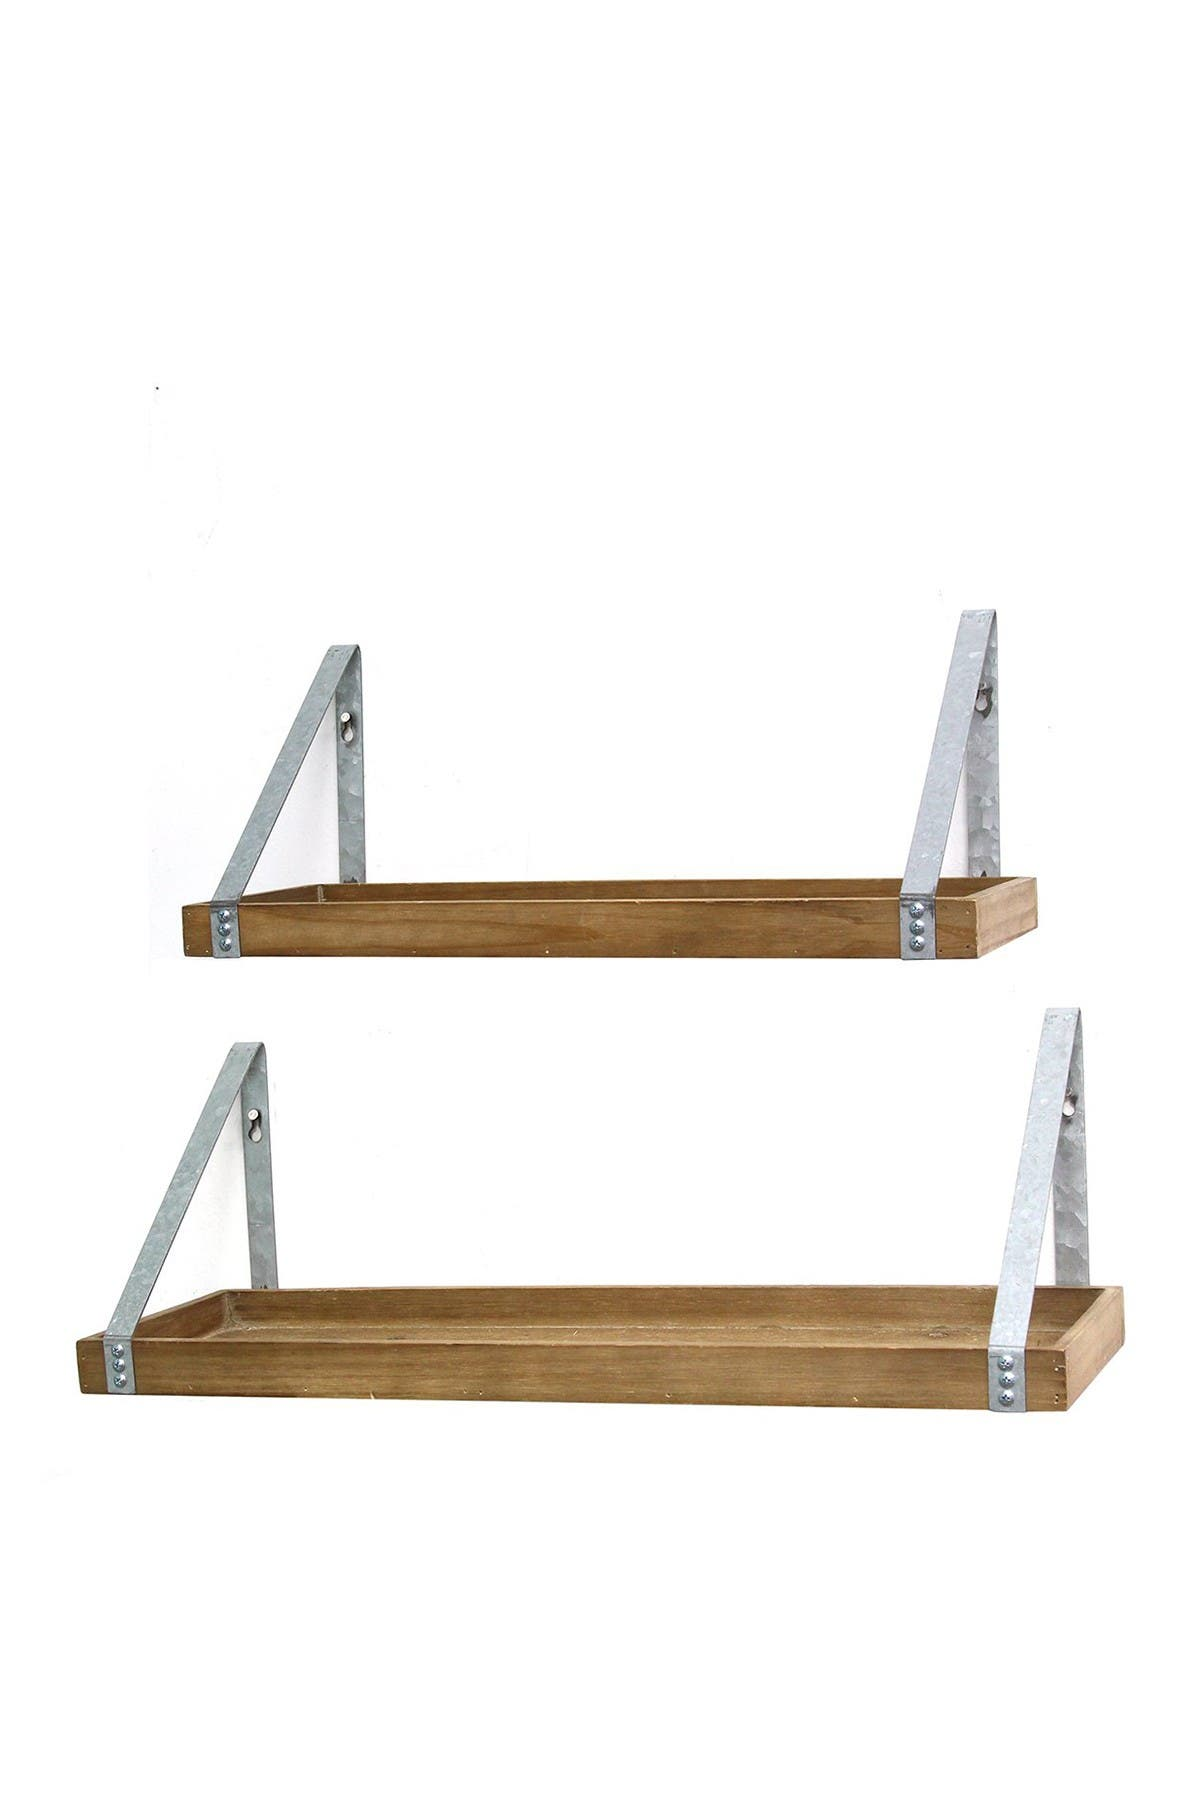 Image of Stratton Home Wood/Galvanized Metal Shelves - Set of 2